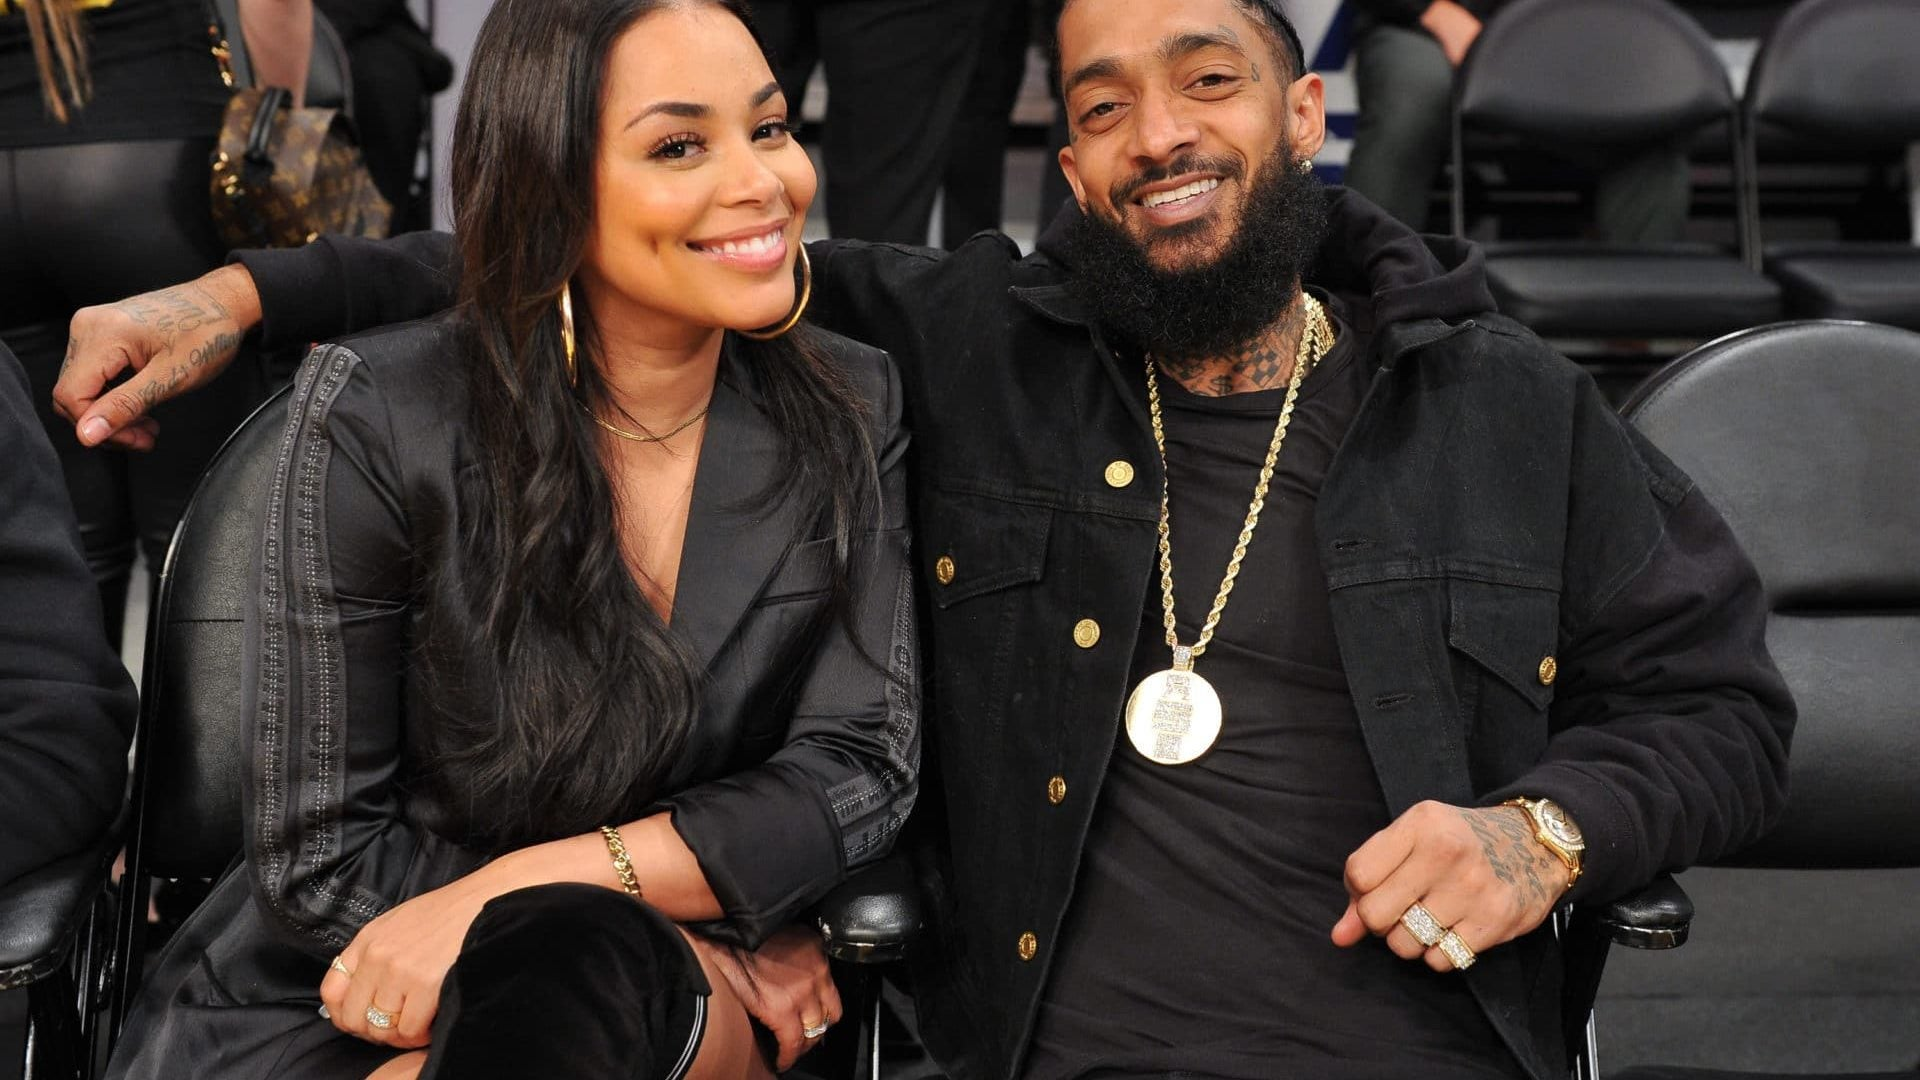 A Look Back At The Love Nipsey Hussle and Lauren London Shared